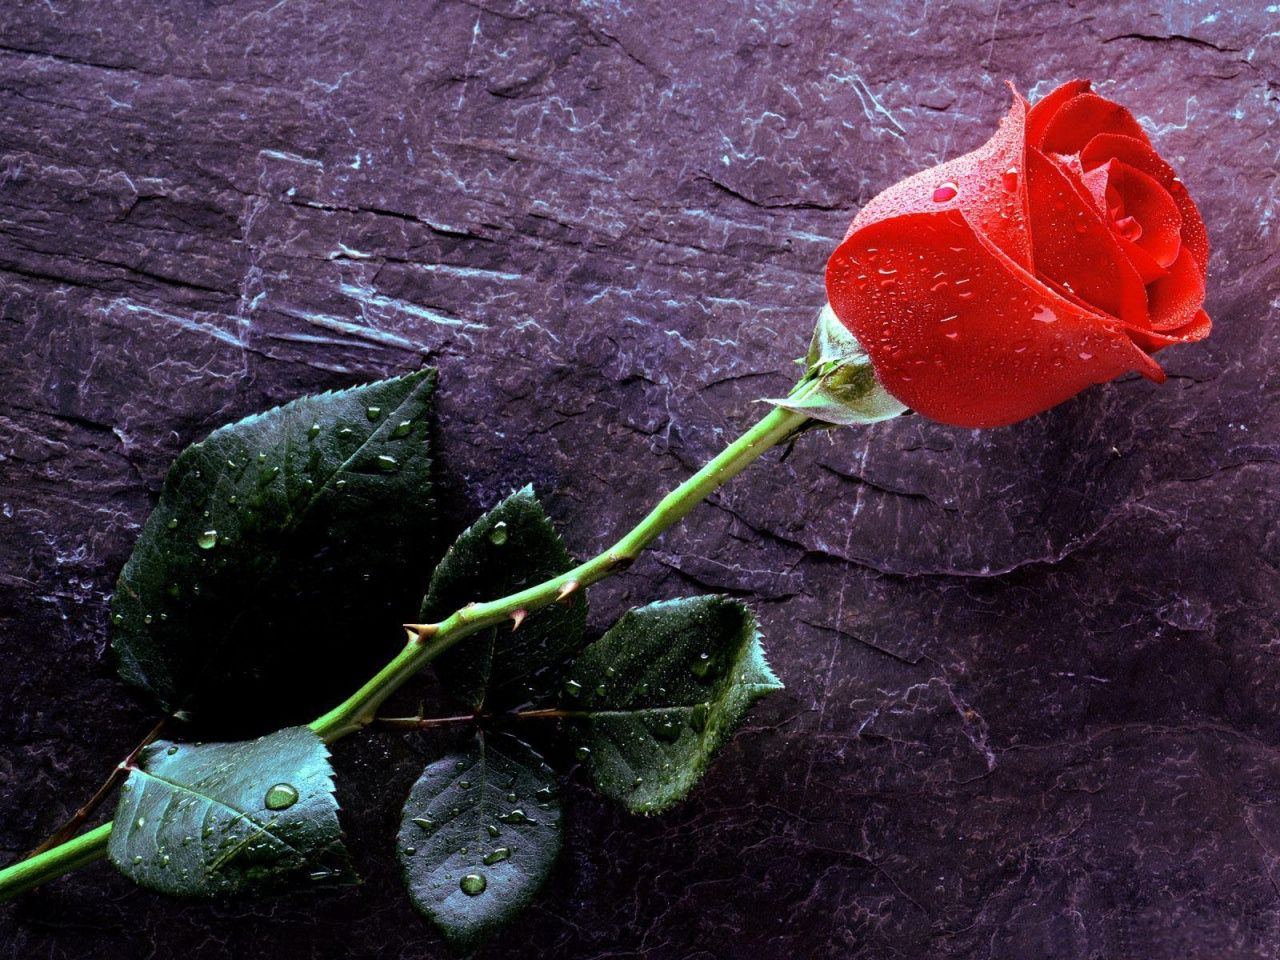 The Rose Beyond The Wall Flower Images Wallpapers Rose Flower